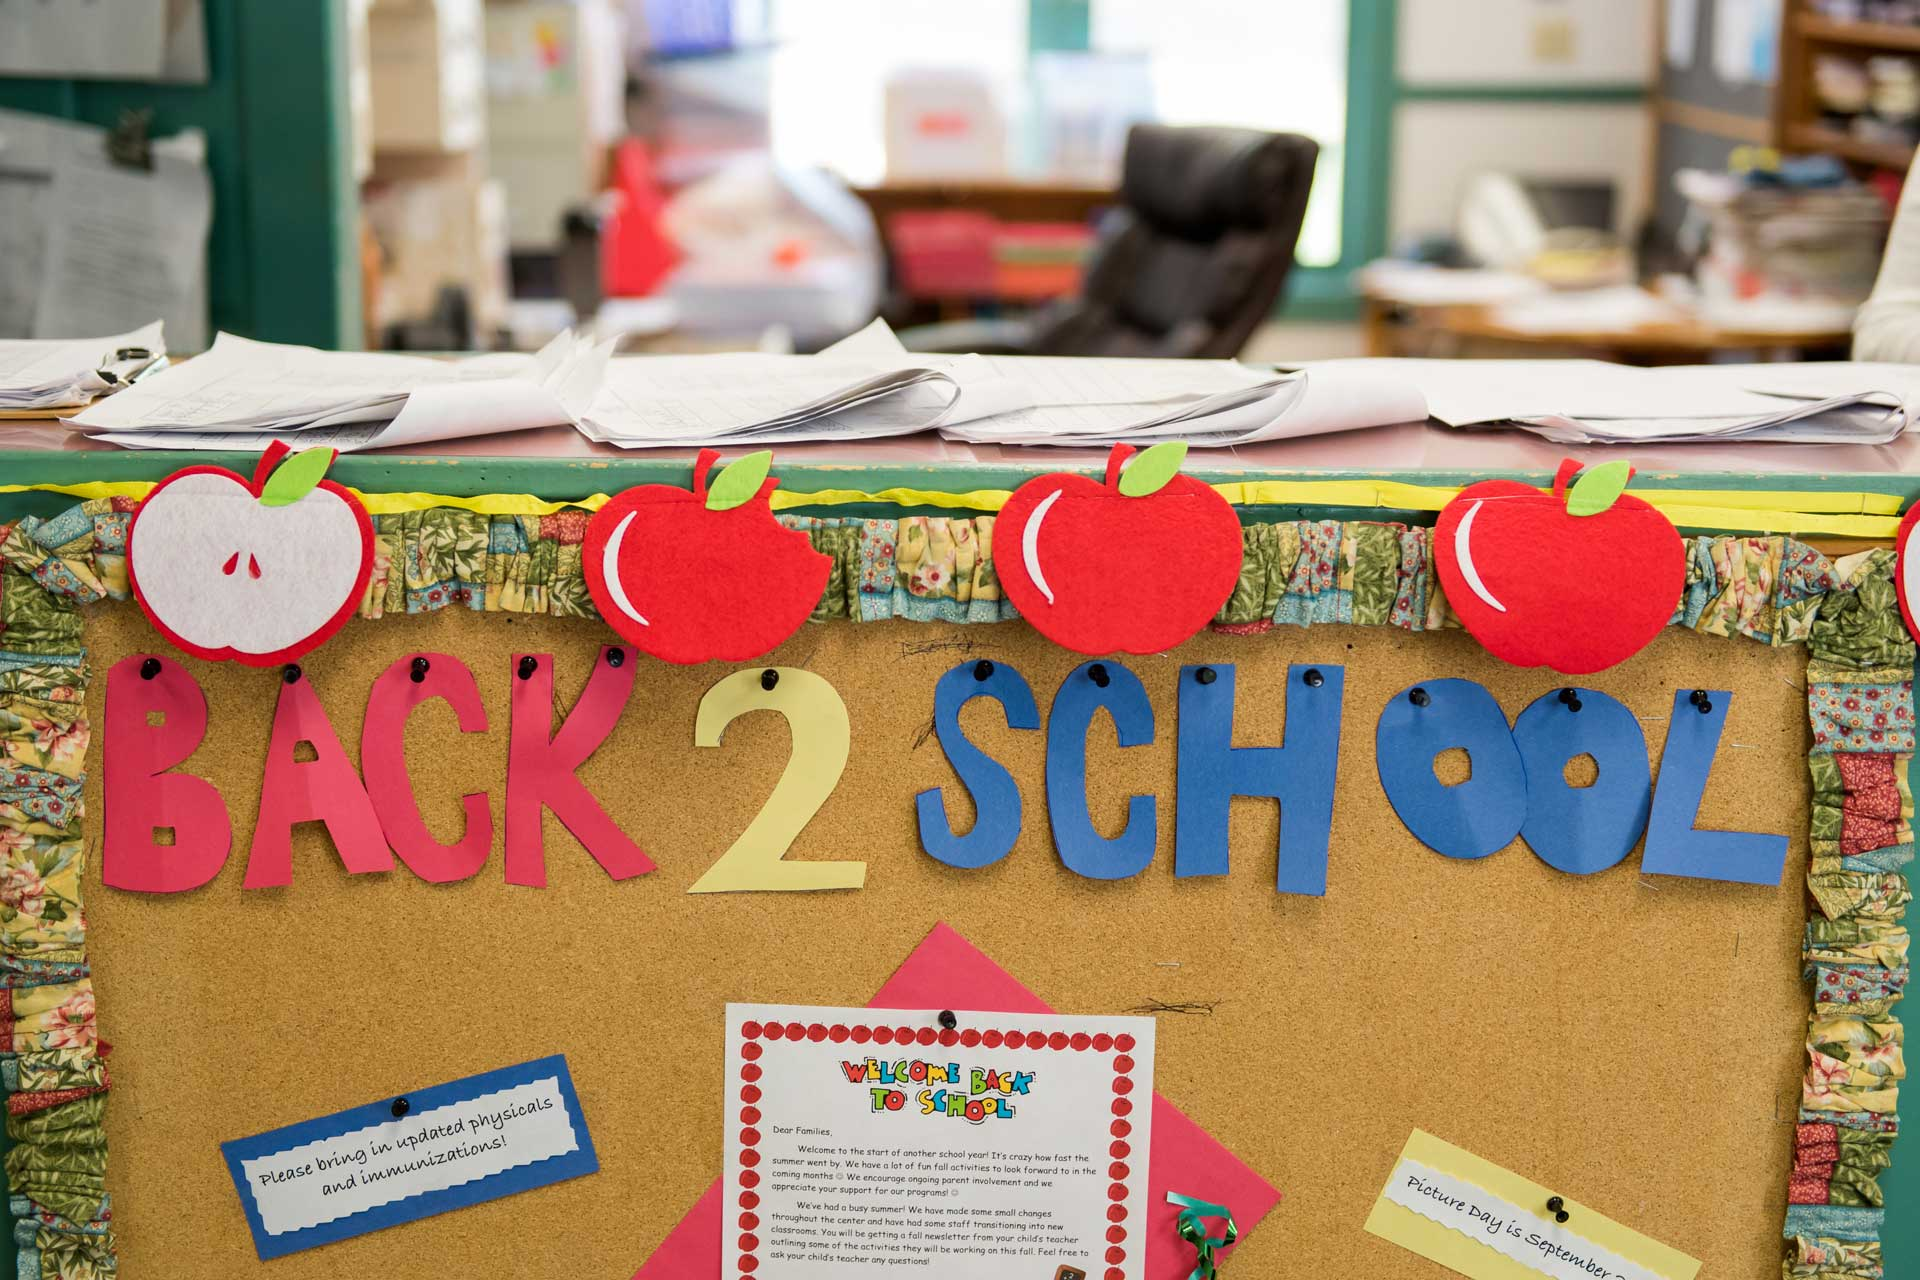 counter with back 2 school sign and cut out apples